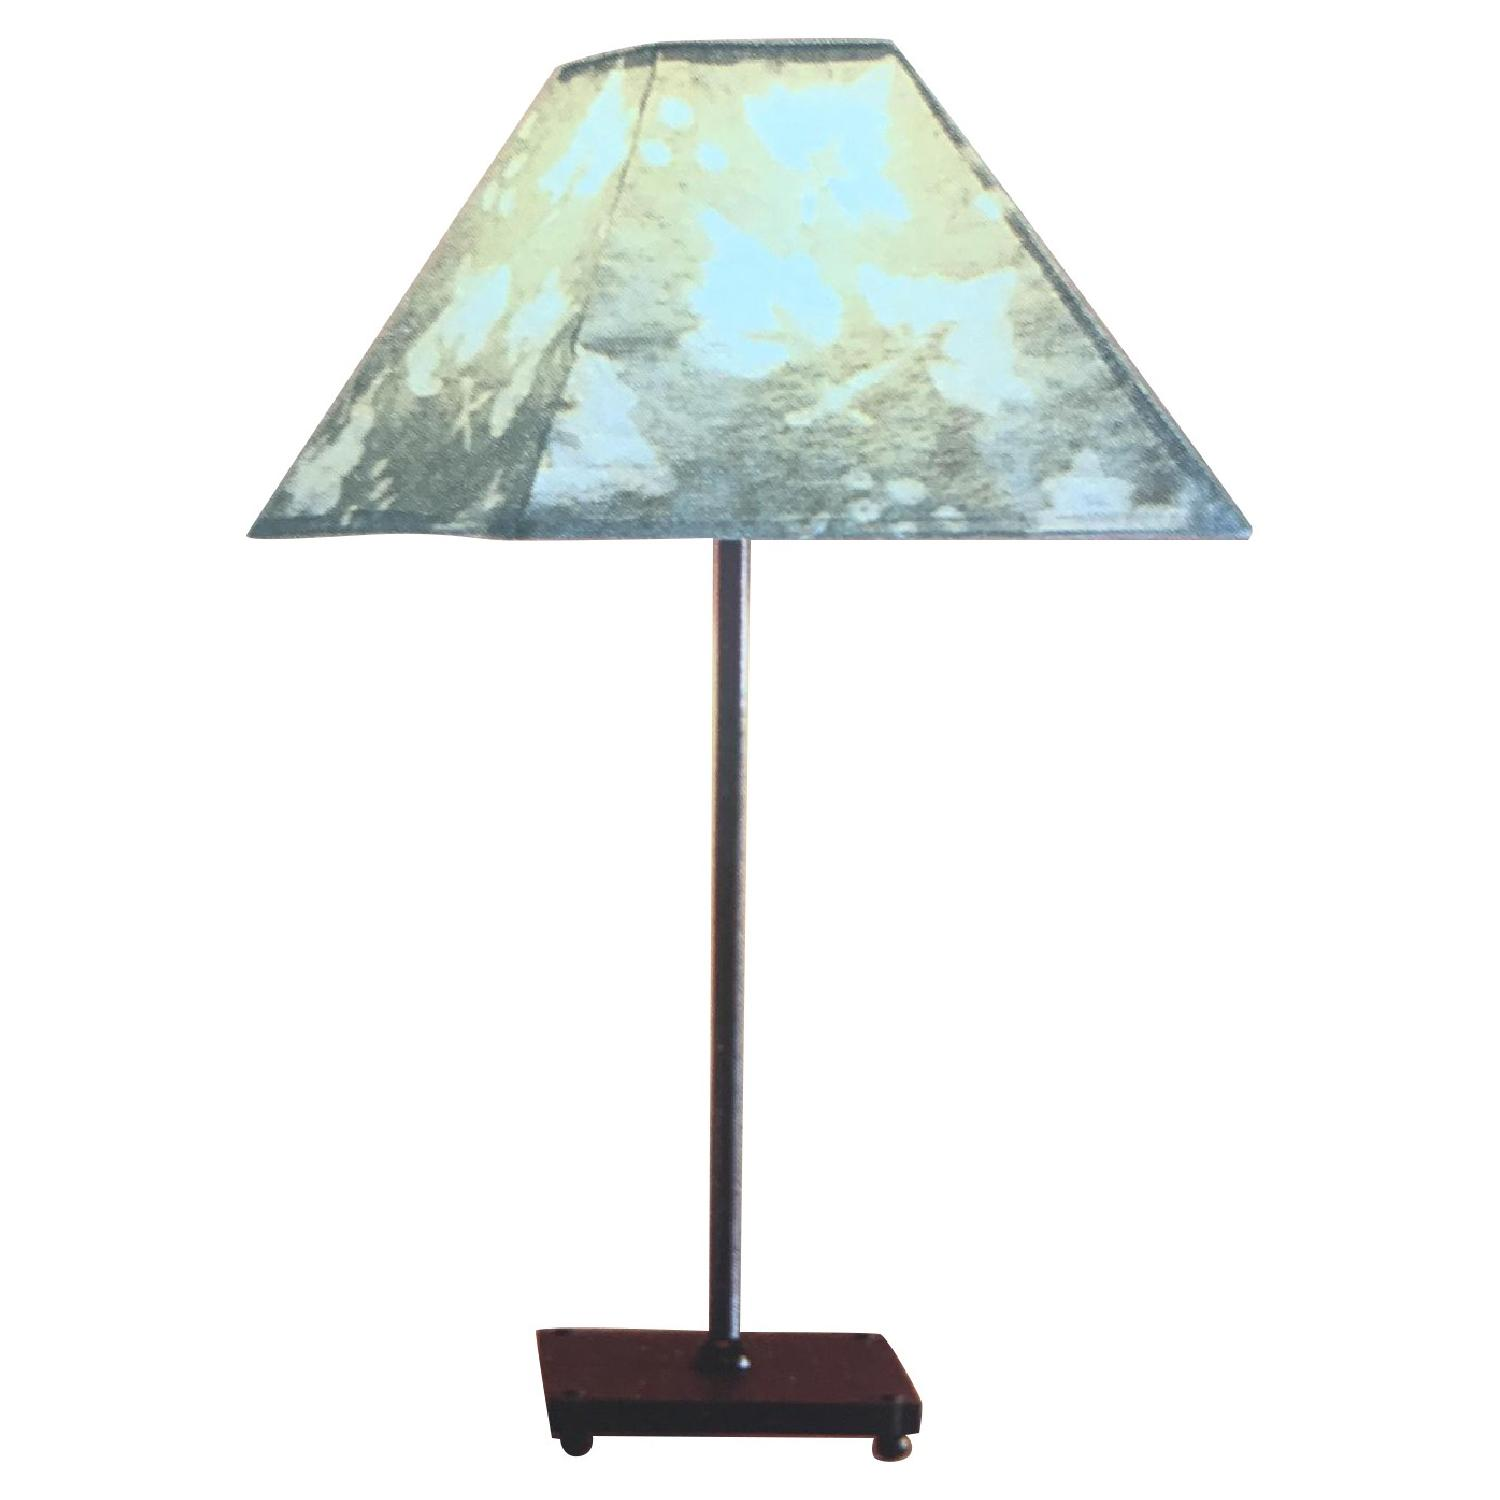 Liz Galbraith Handmade Paper Shade Grape Leaf Table Lamp